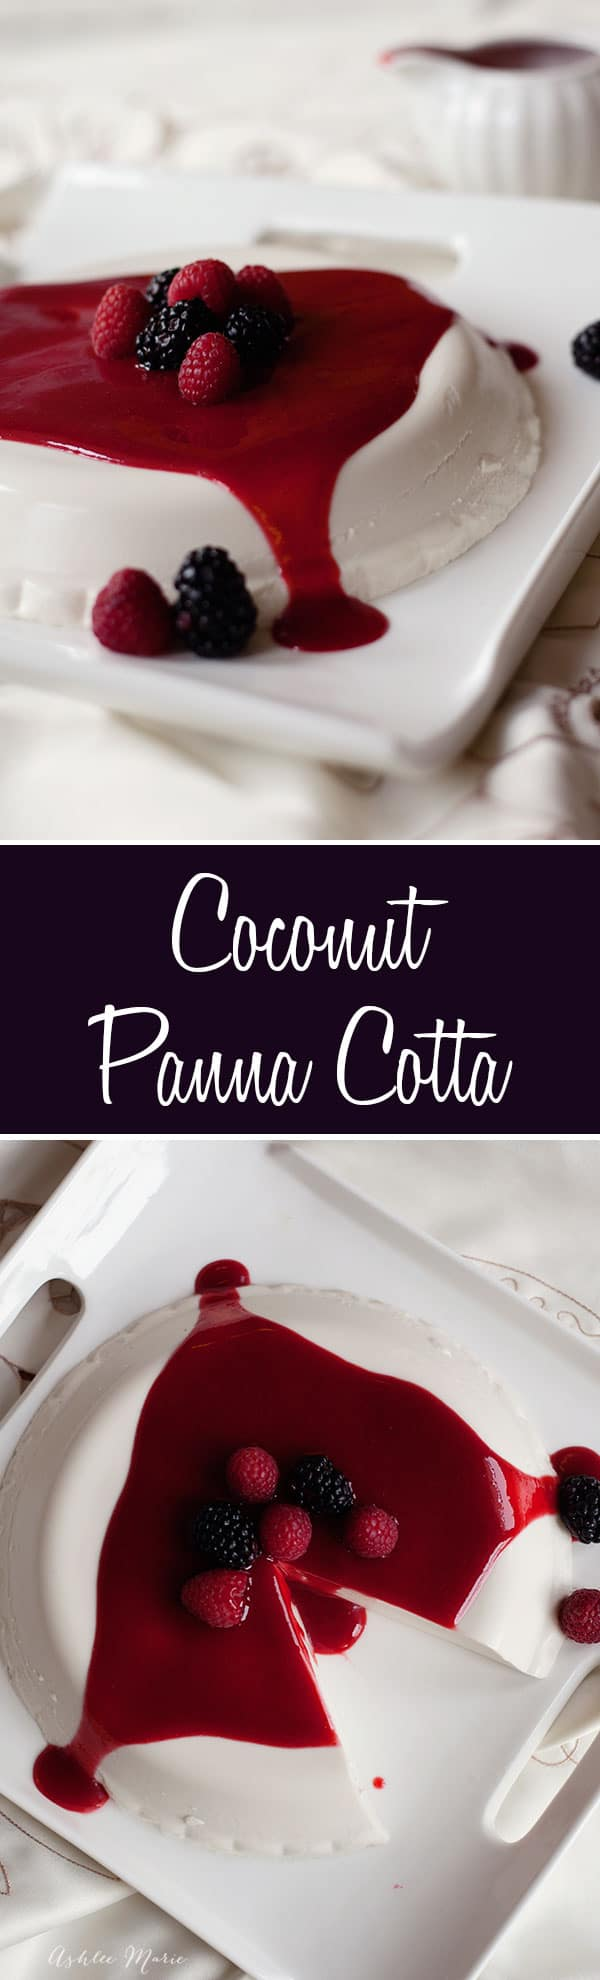 one of my all time favorite desserts is this coconut panna cotta. A smooth creamy texture with amazing coconut flavor, served with a raspberry and blackberry coulis it never lasts long